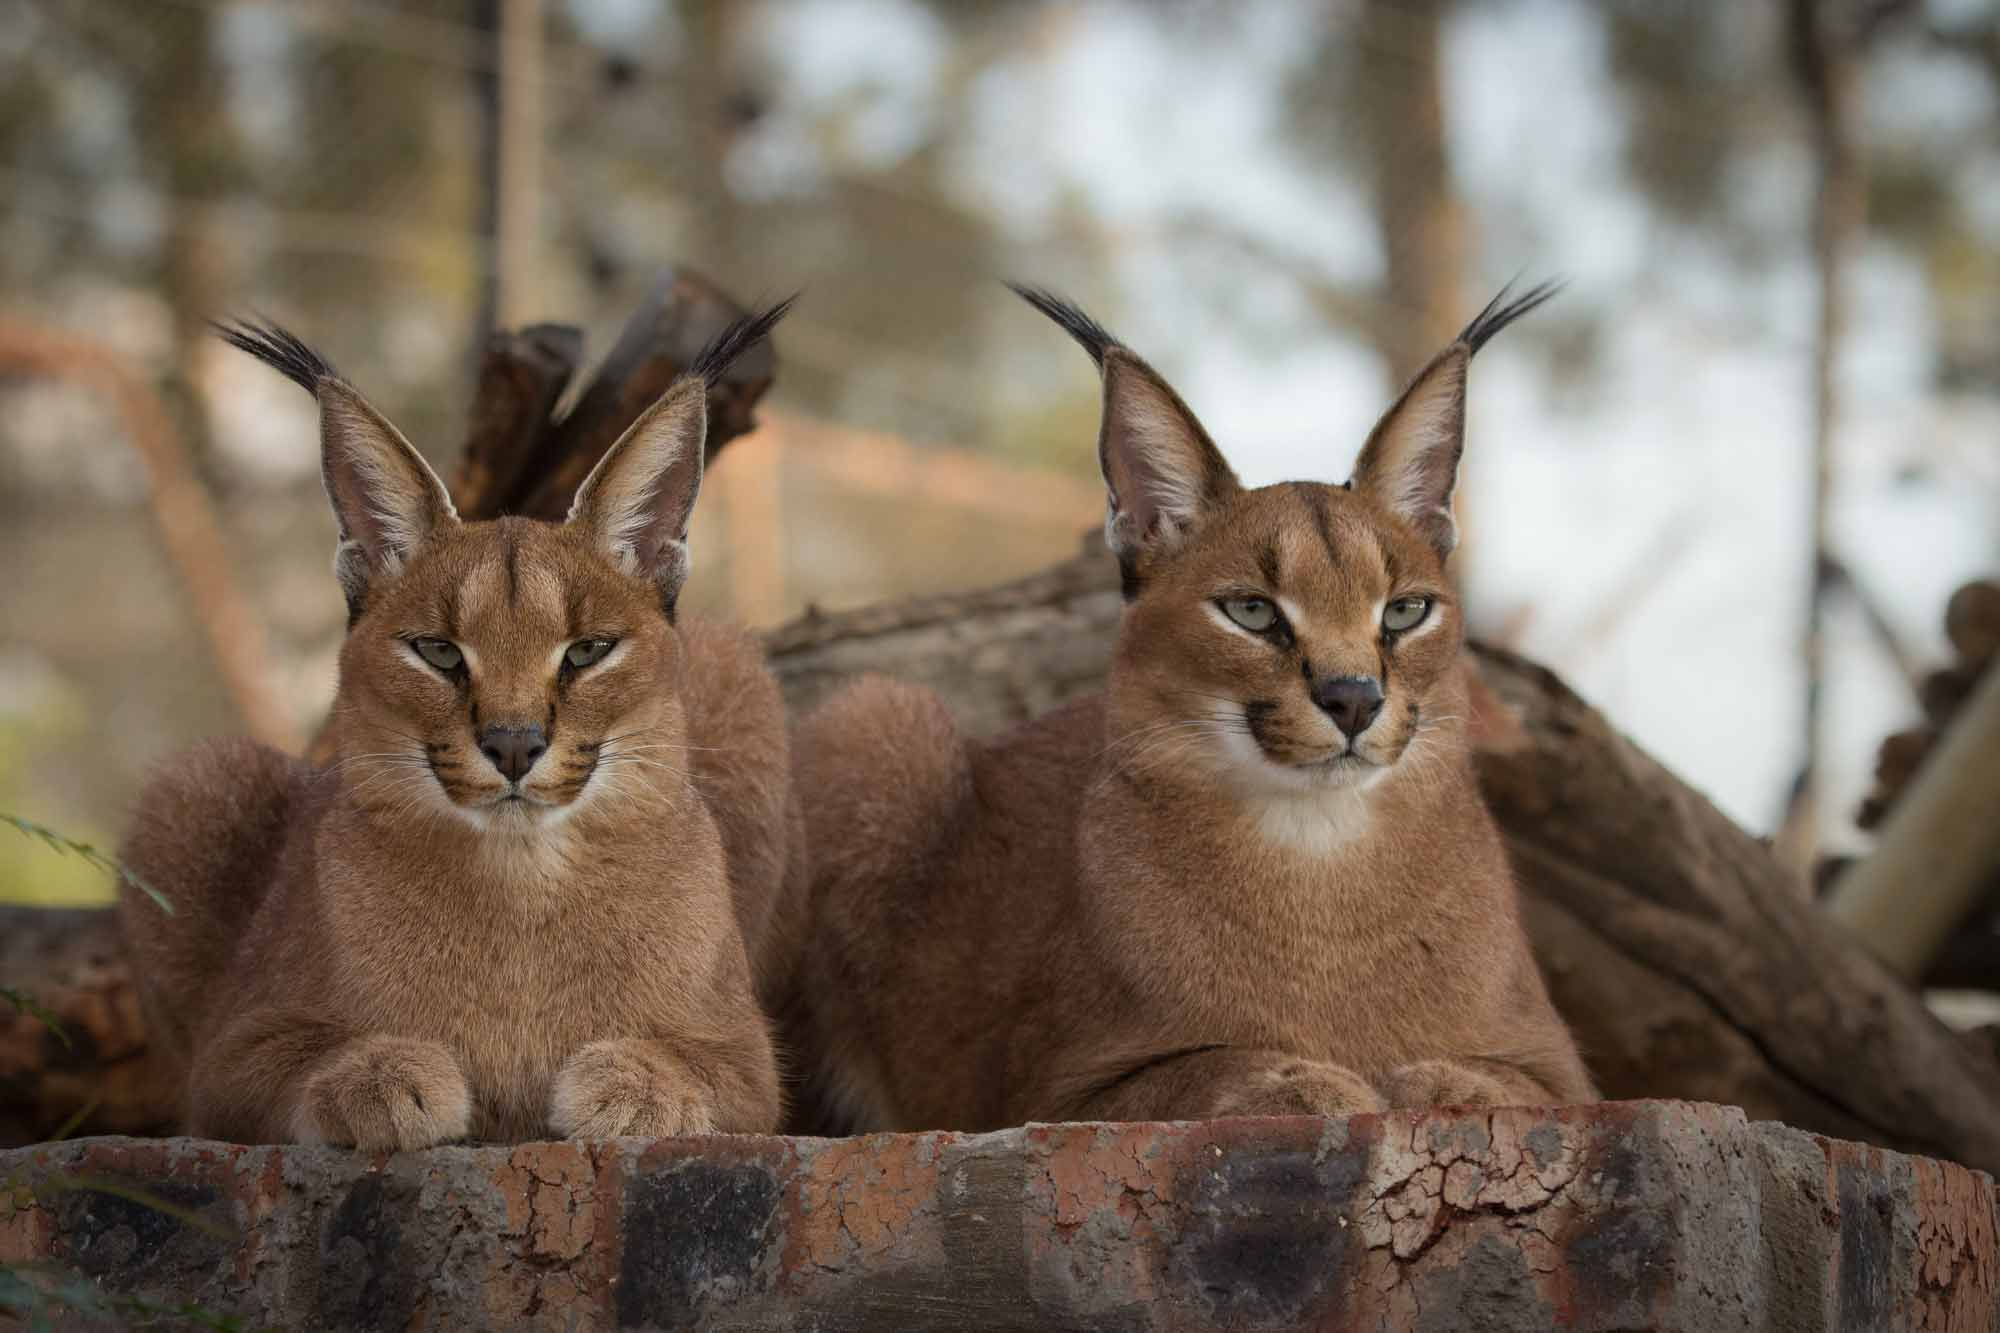 Cheetah Experience Caracal friends